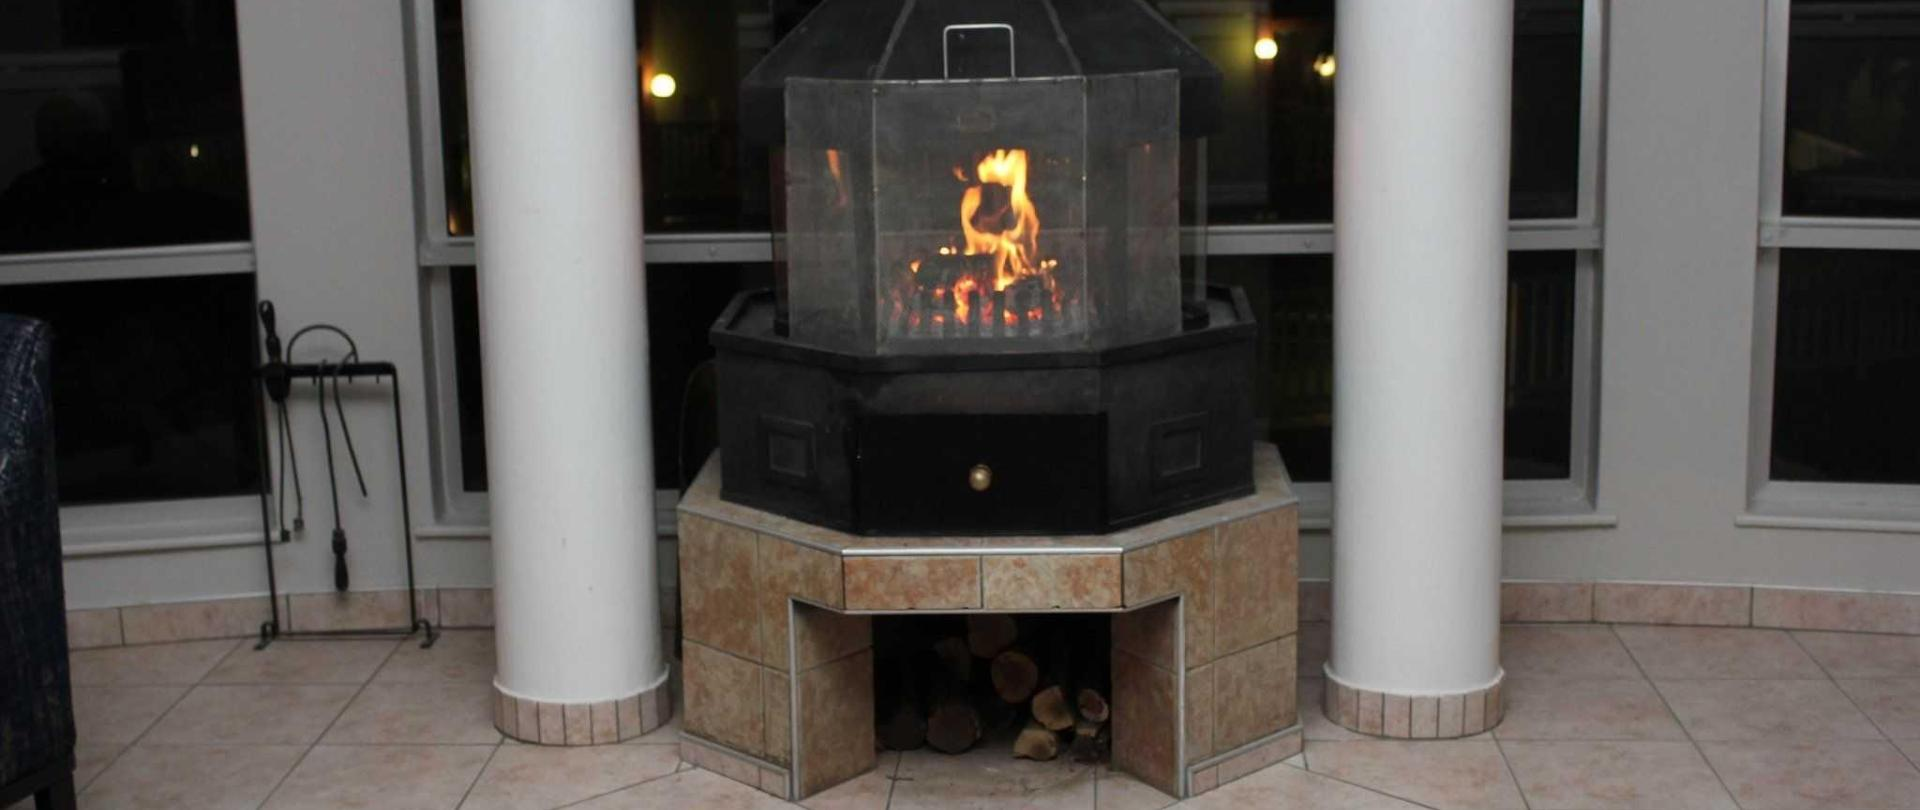 2017-lnh-fireplace.jpg